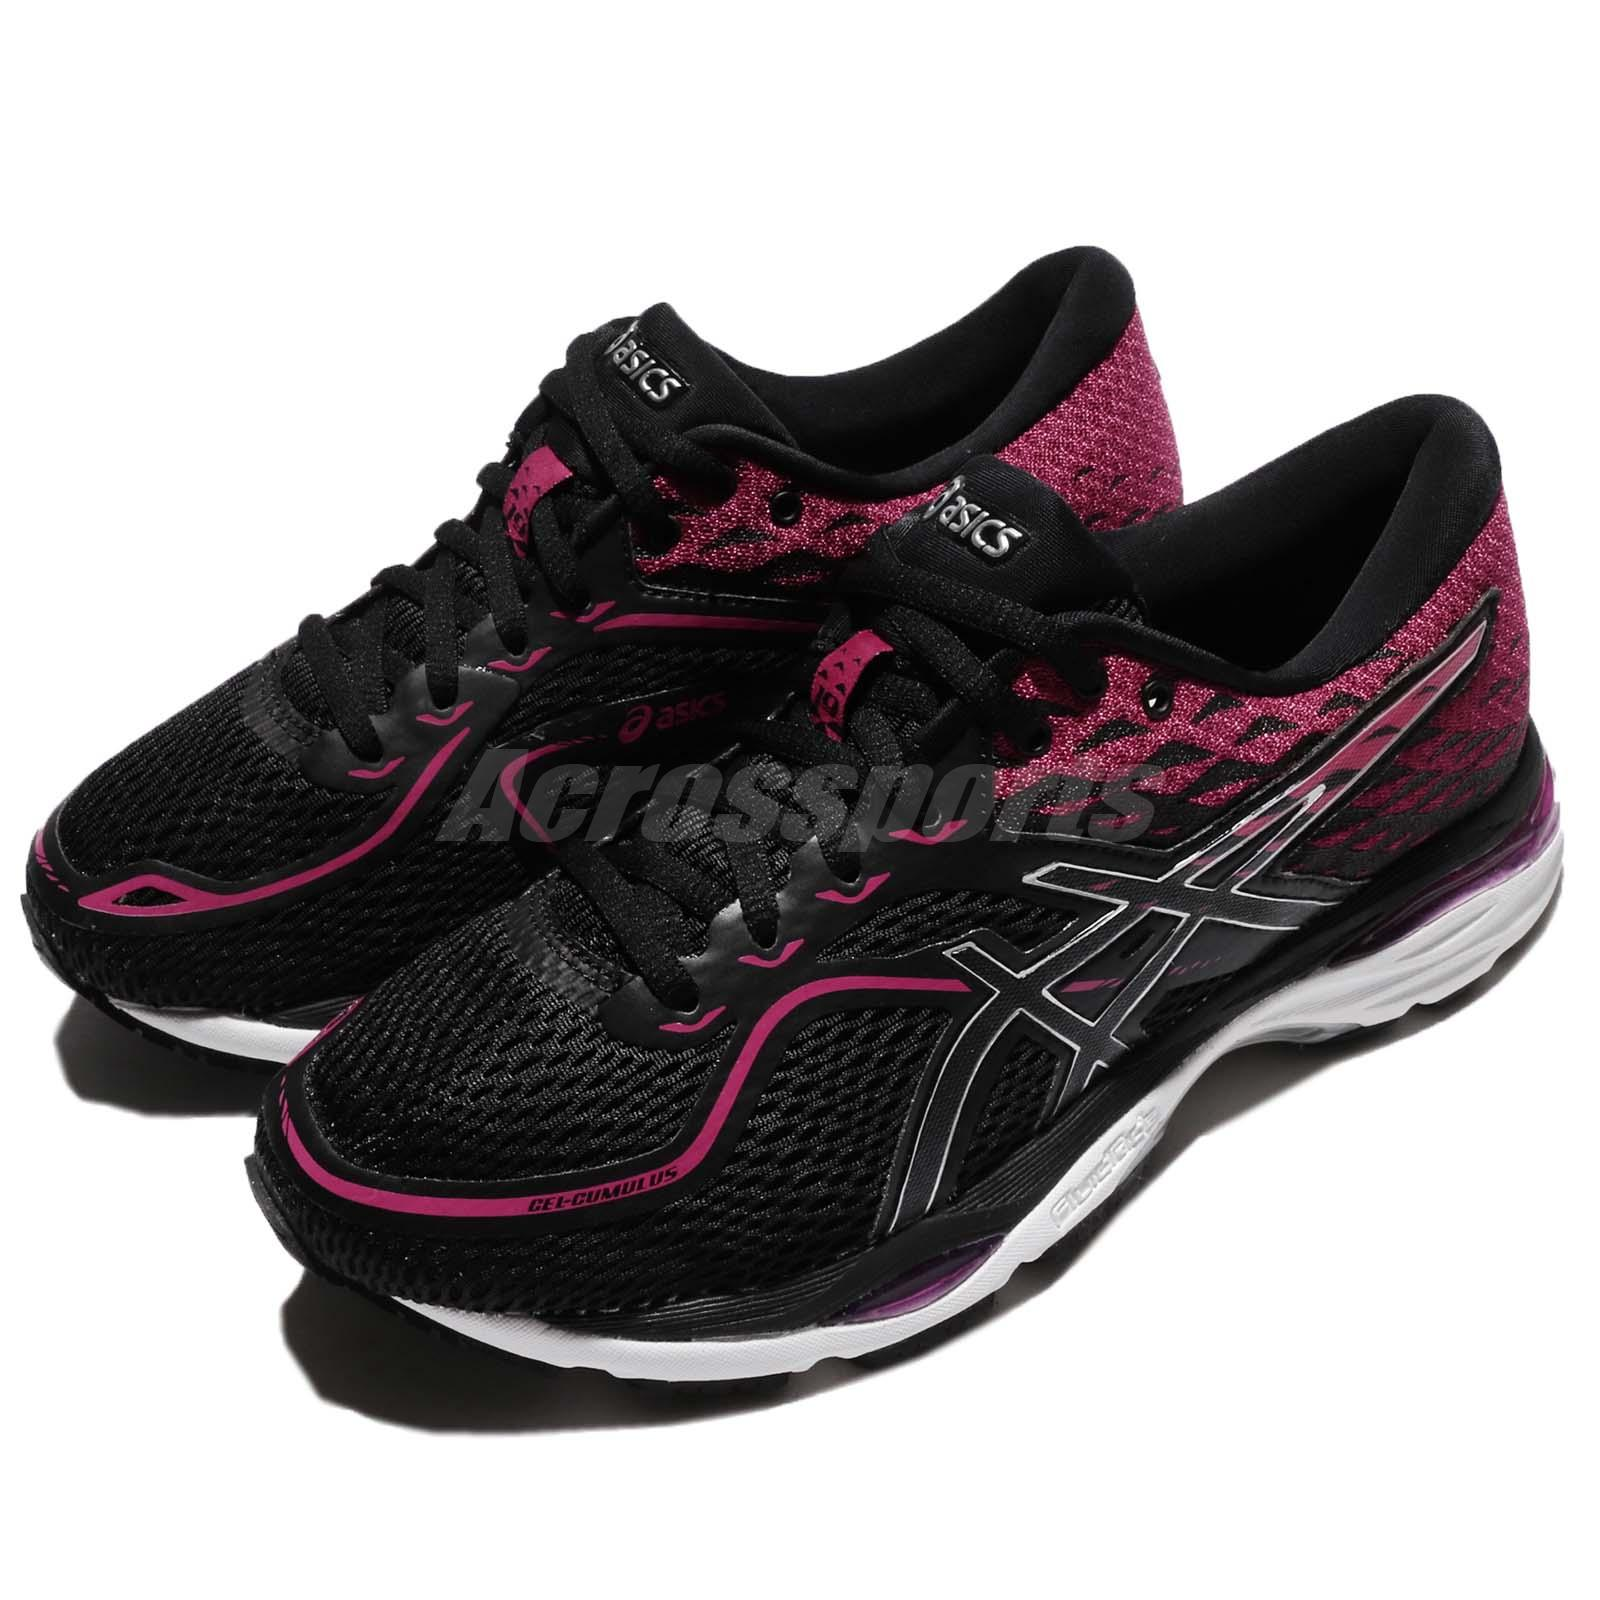 Asics Gel Cumulus 19 Black Silver Pink Women Running Shoes Sneakers T7B8N 9093